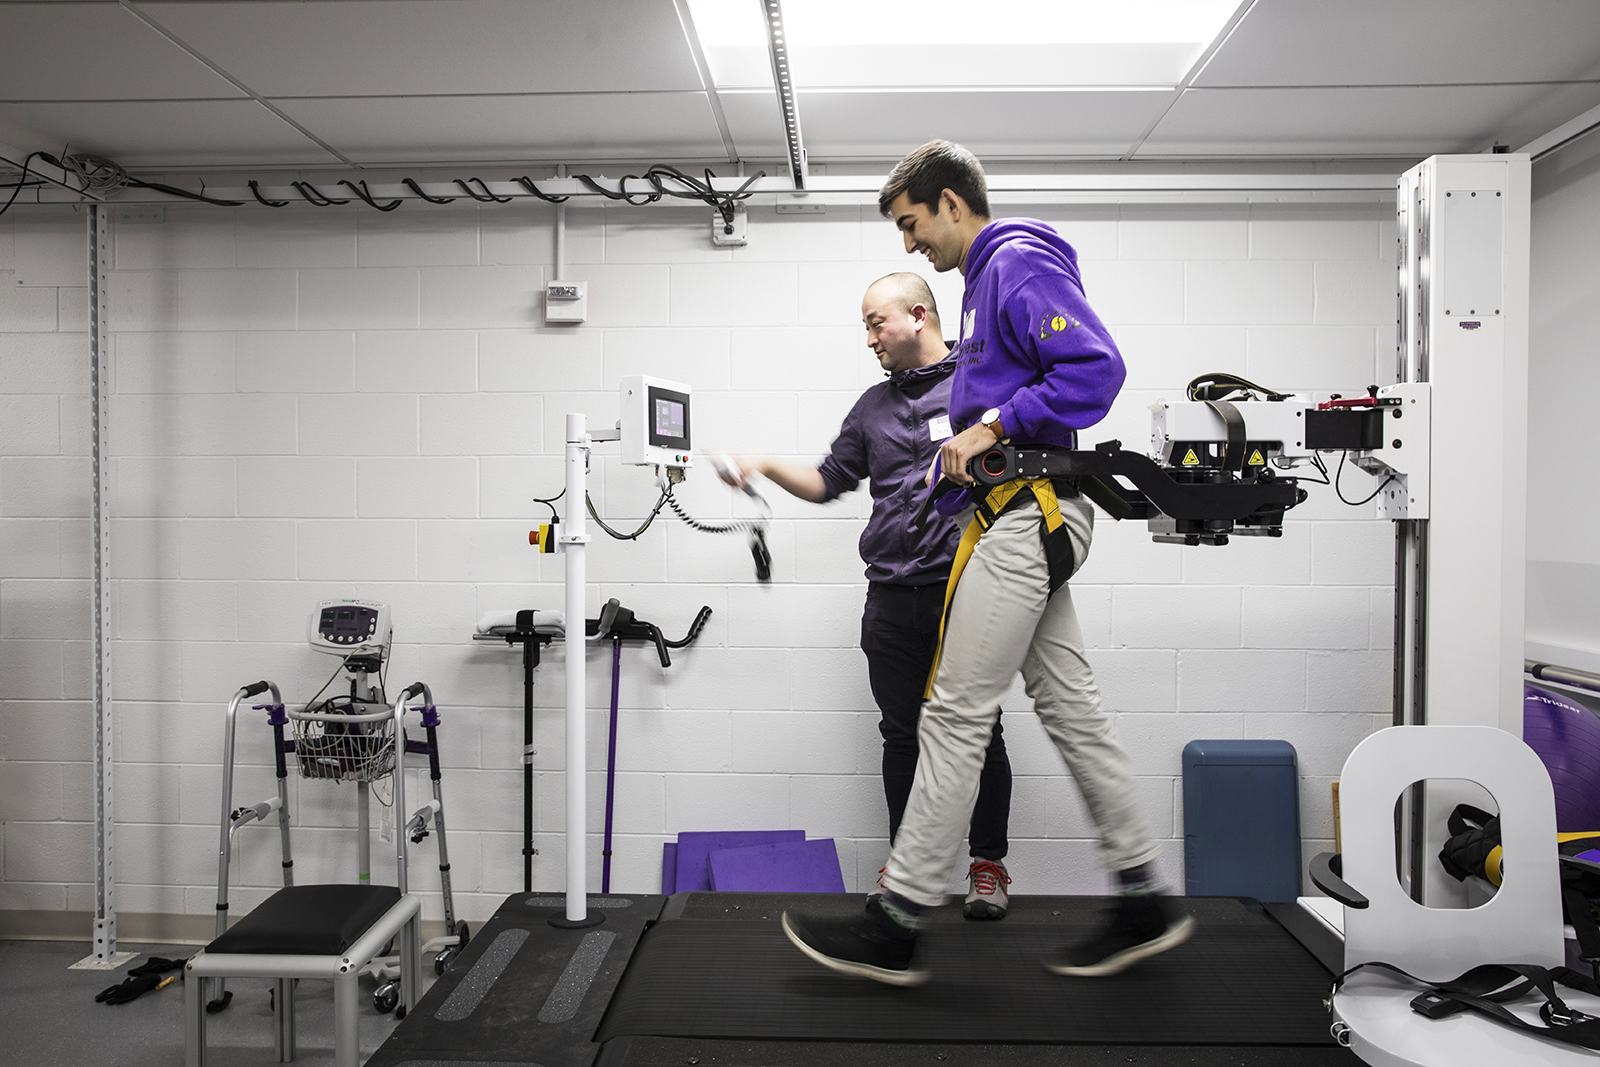 In the Amplifying Movement and Performance (AMP) Lab, Ph.D. student Soshi Samejima works with another student on a KineAssist treadmill for spinal-simulation research. A partnership between the UW's Department of Rehabilitation Medicine and the College of Engineering, the lab advances understanding of both human and robot movement. (Photo by Mark Stone)